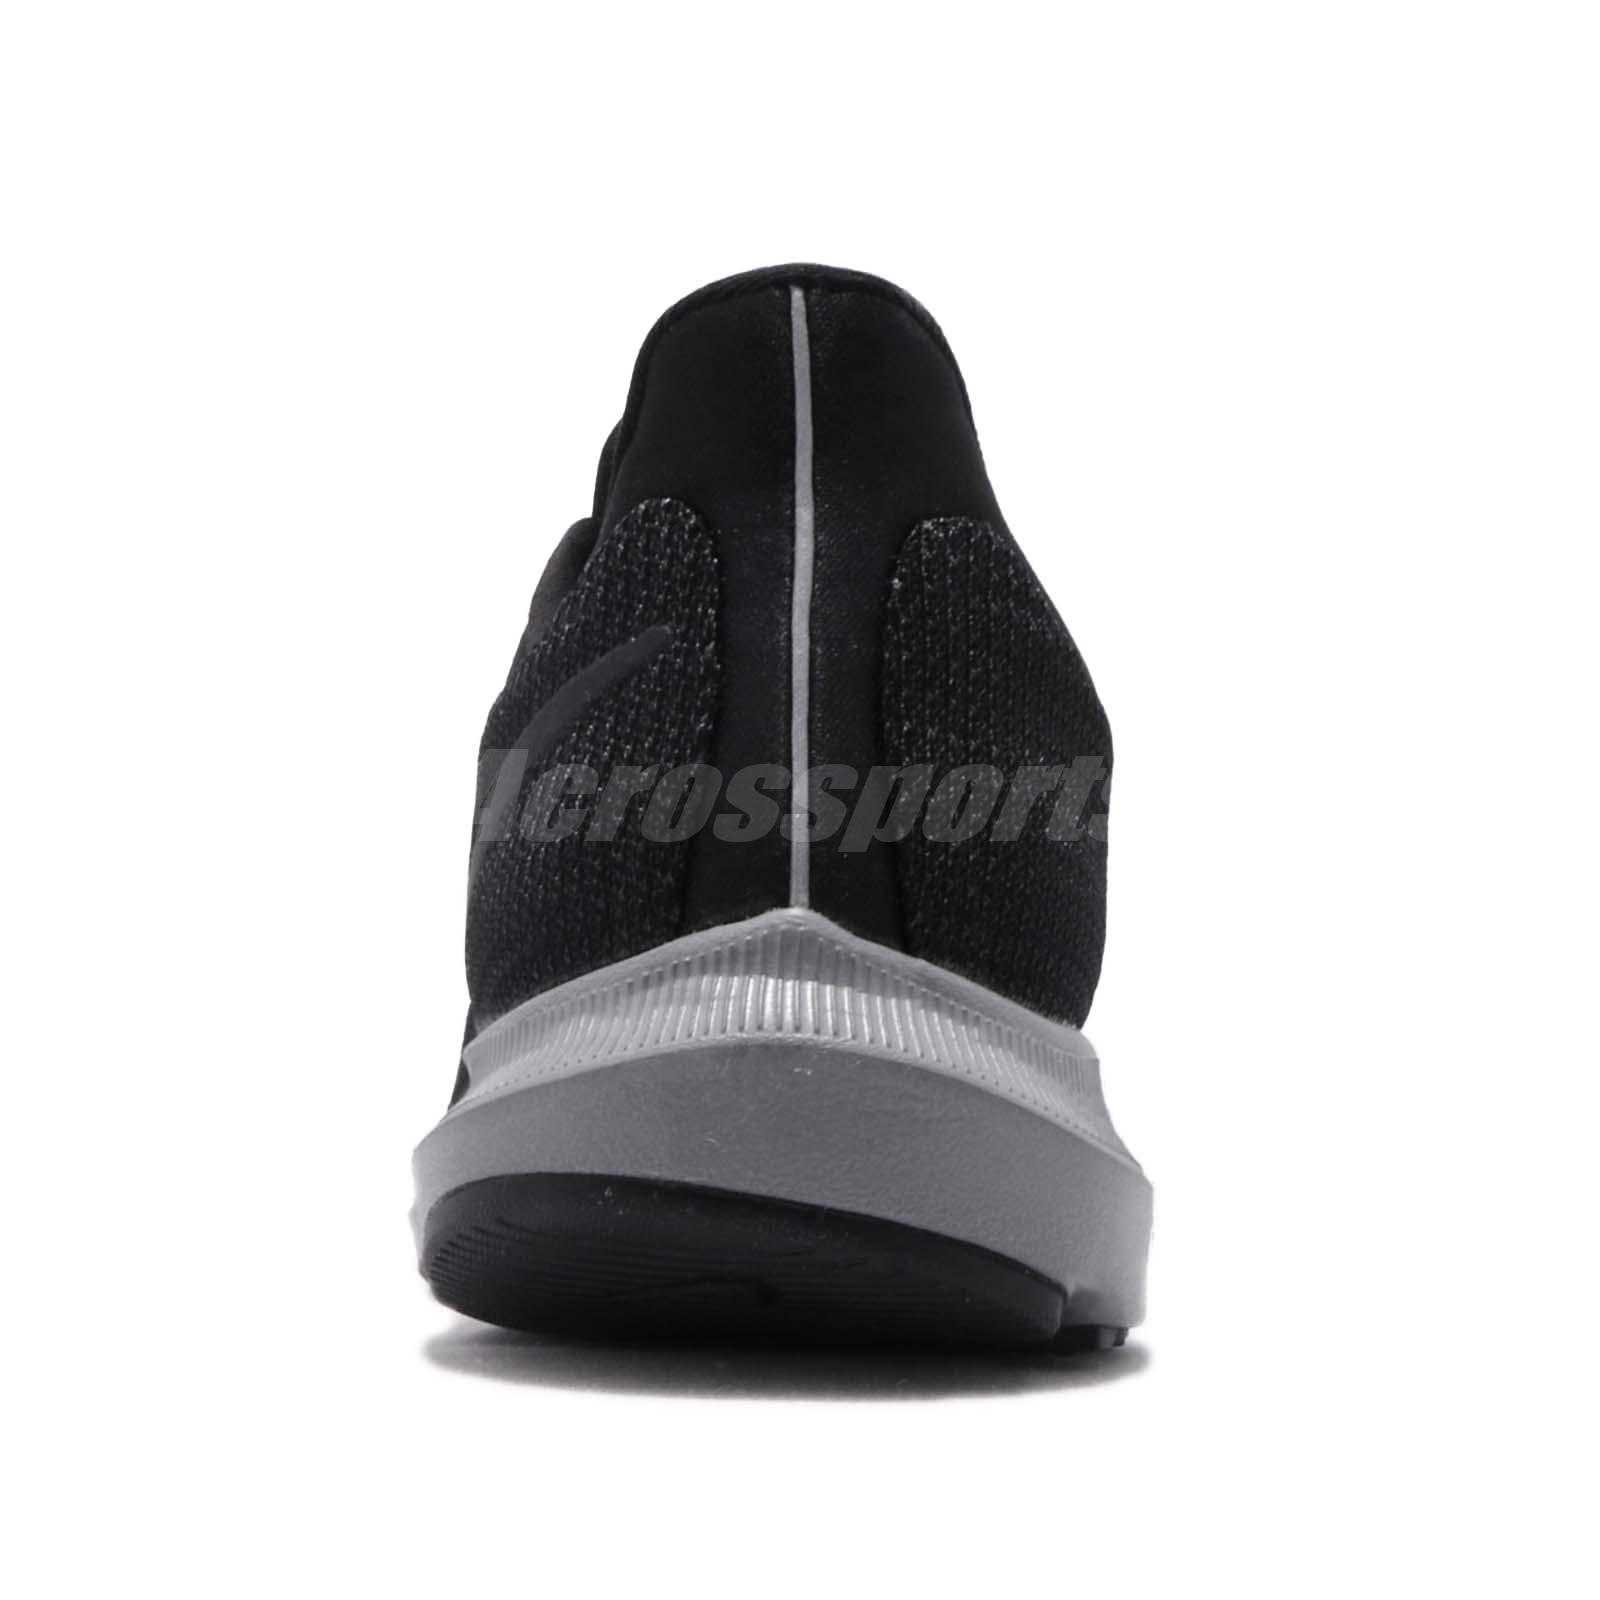 25aac2e4 Nike Quest Black Anthracite Grey Men Running Training Shoes Sneakers ...